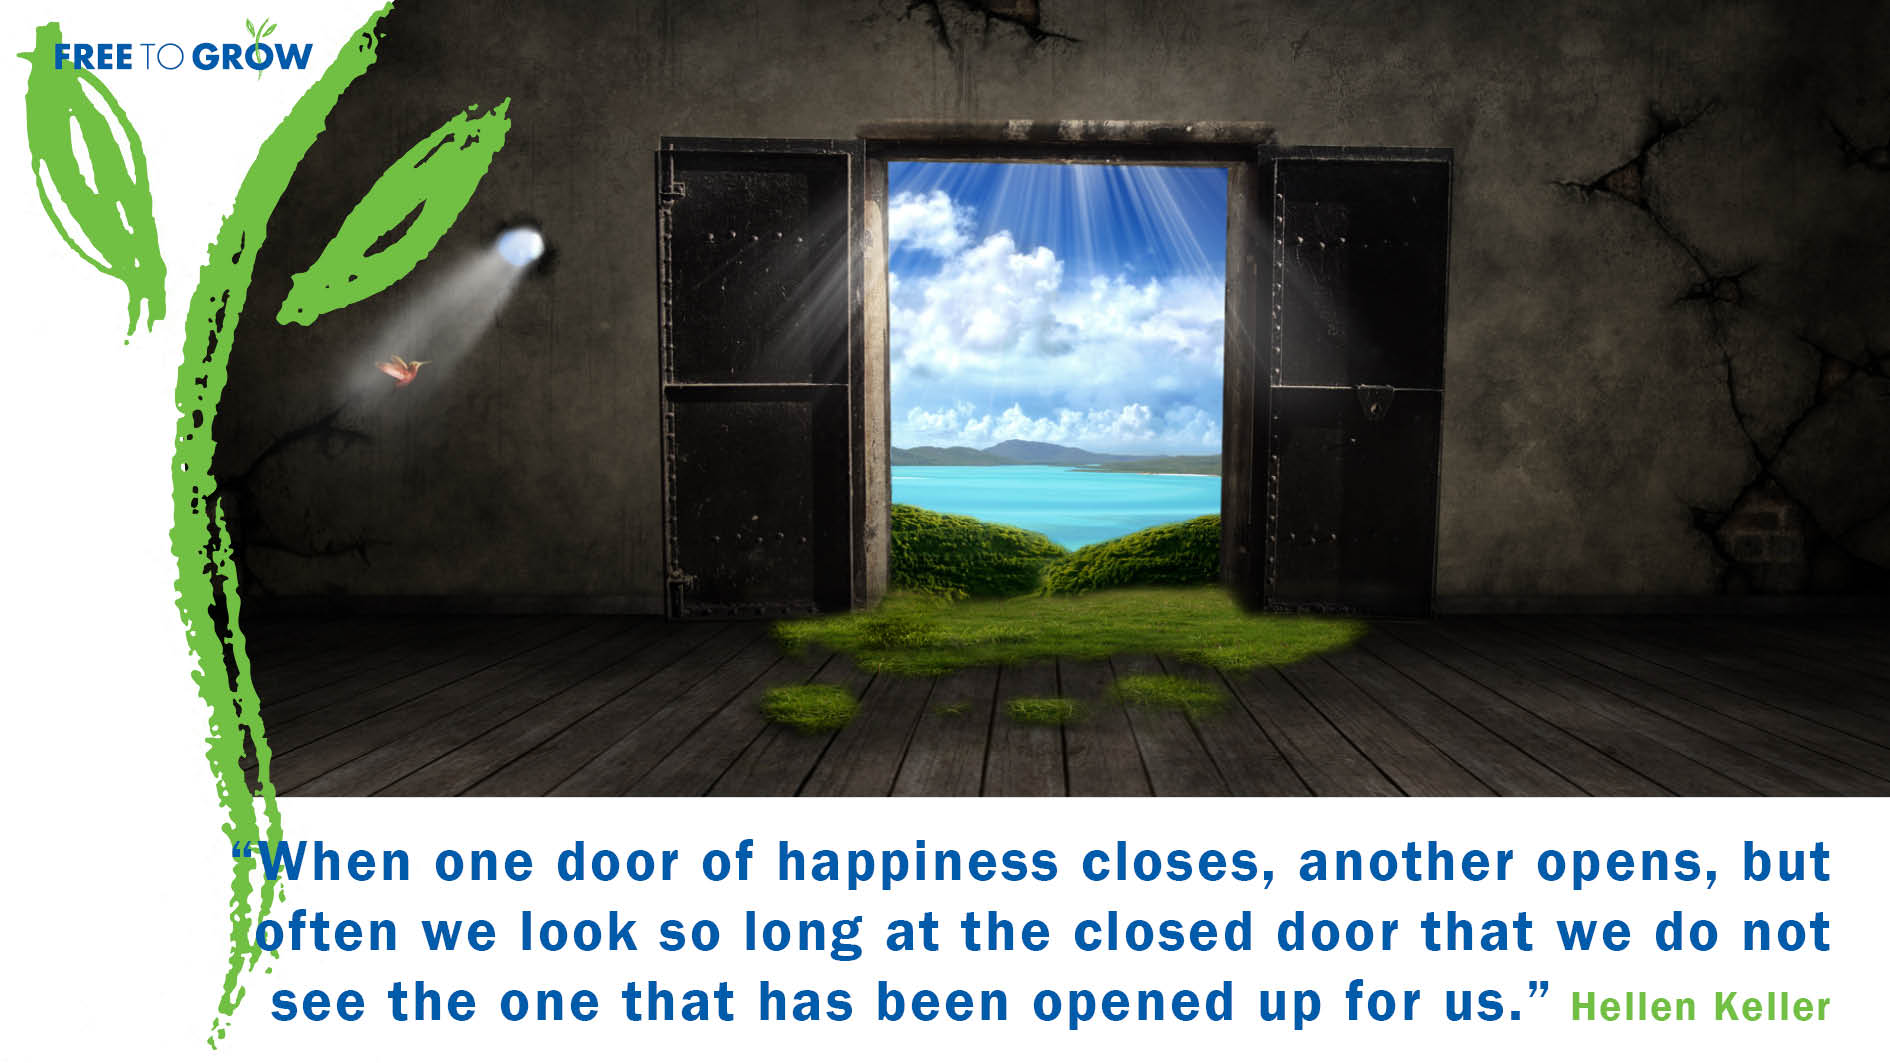 Free To Grow Quote Card - When one door of happiness closes, another opens